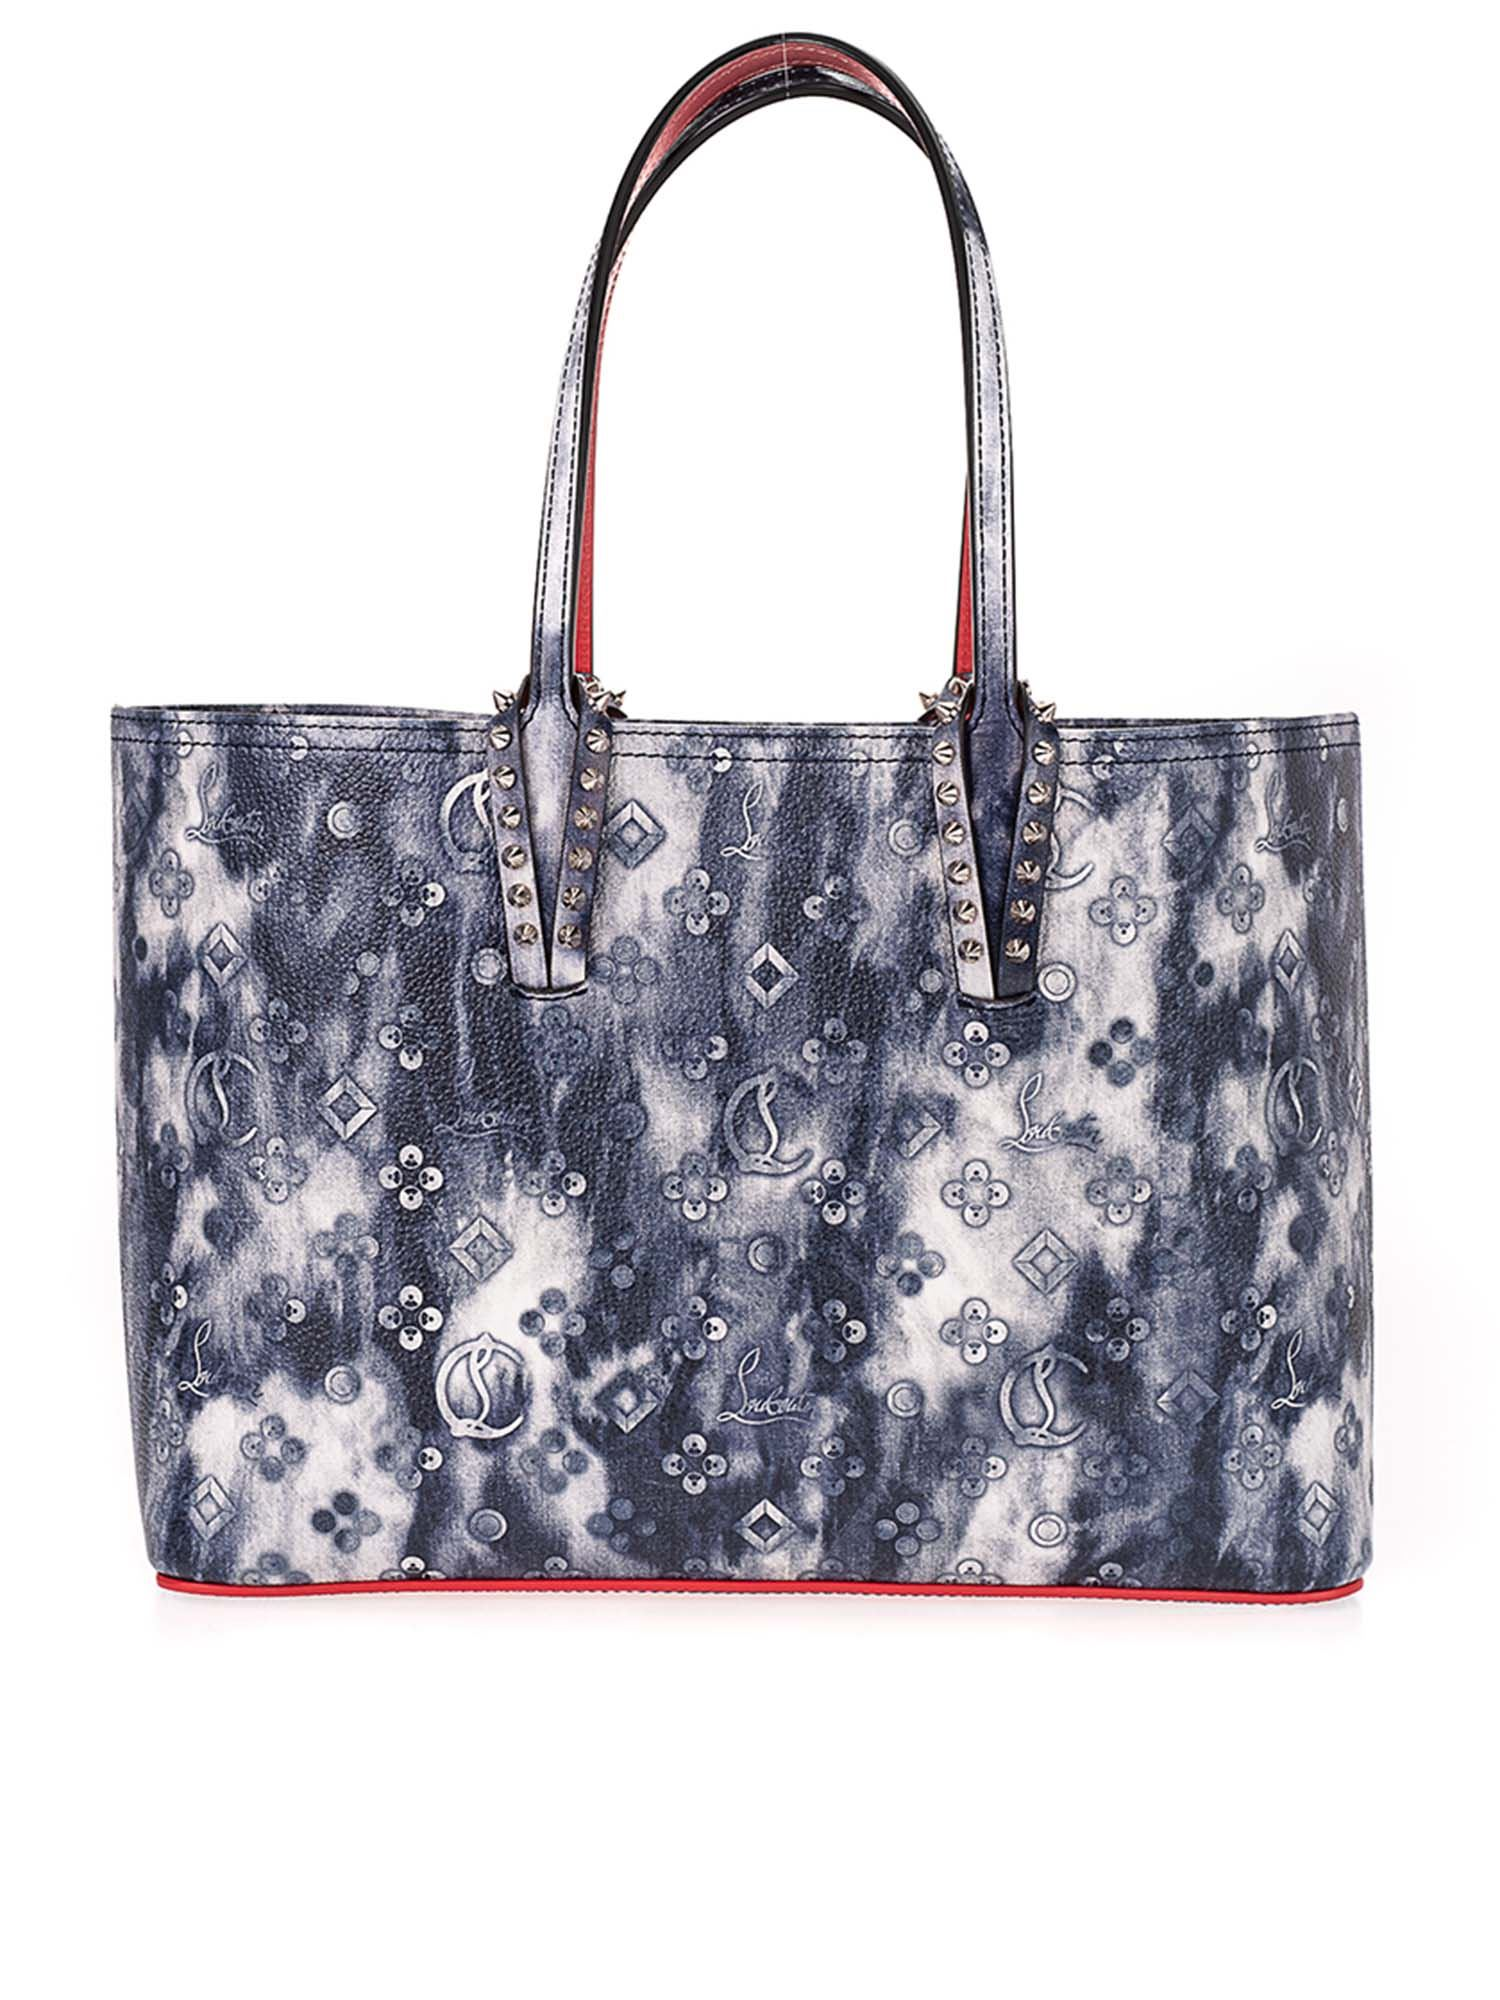 Christian Louboutin Leathers CABATA SMALL BAG IN SHADES OF BLUE